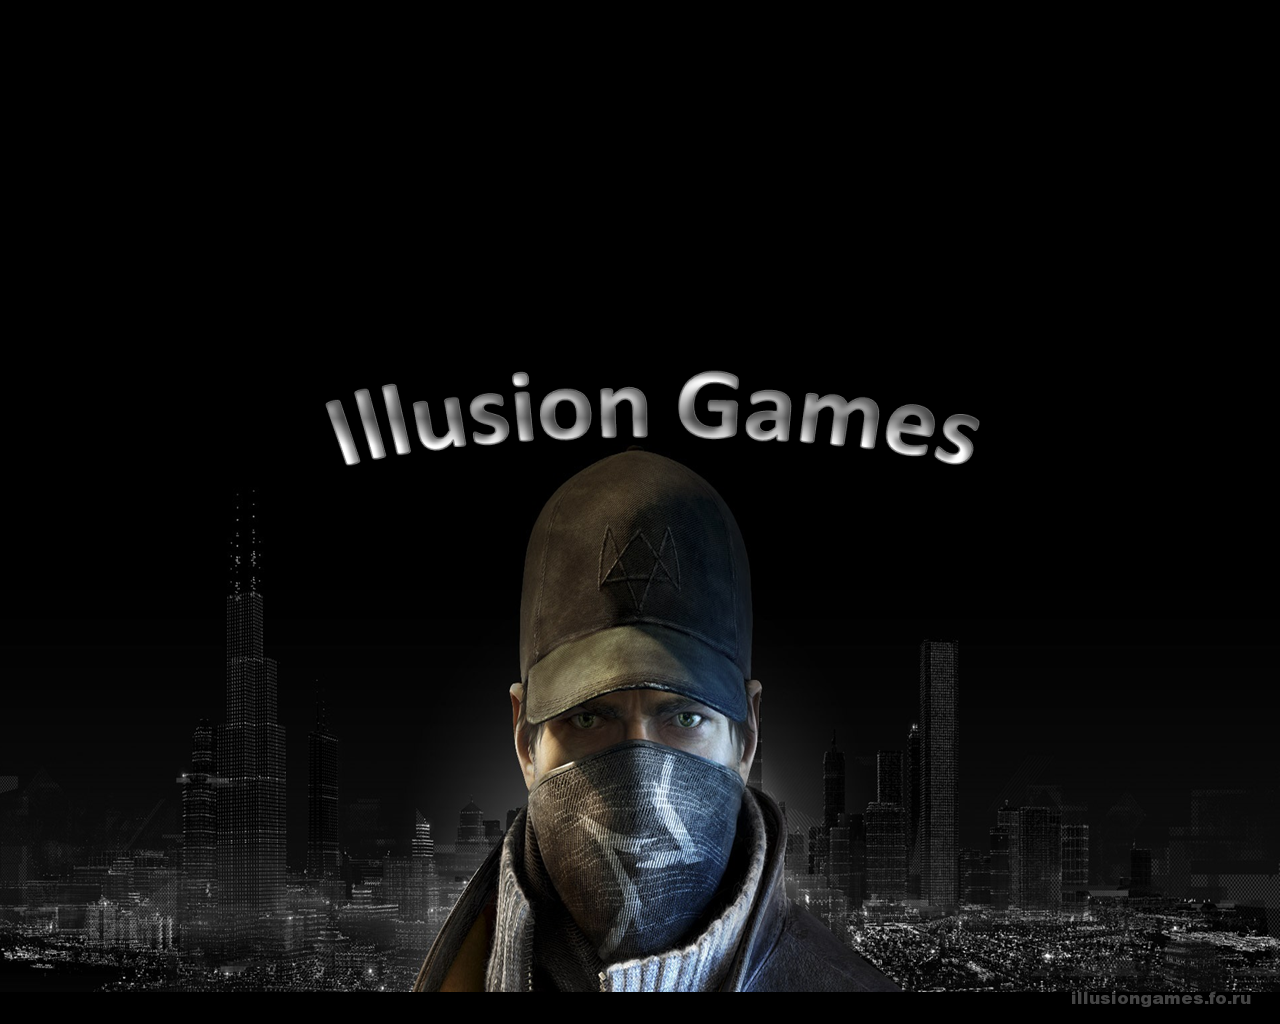 download free the best illusion games software backupclear